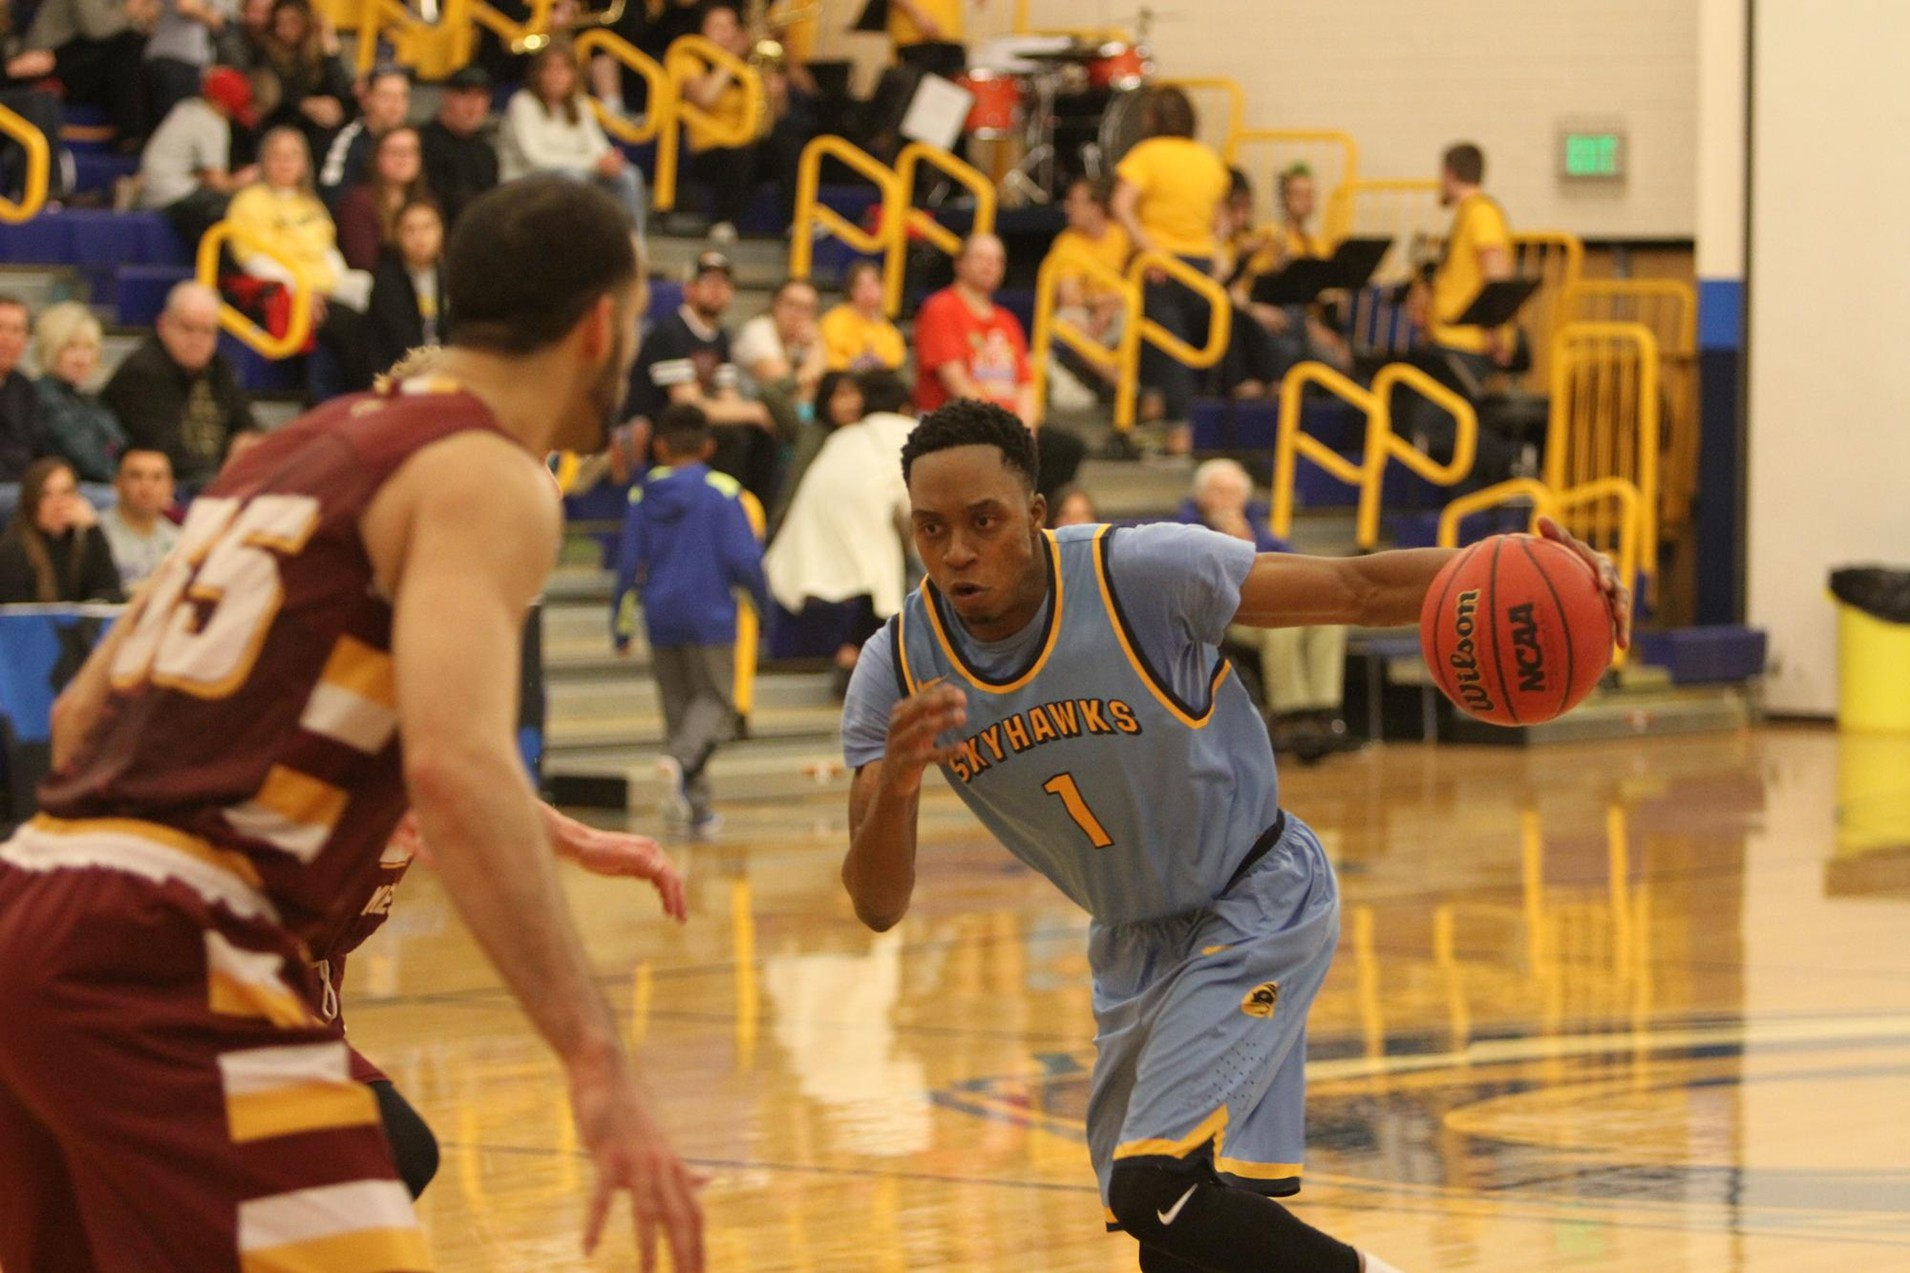 Joshua Blaylock Men S Basketball Fort Lewis College Athletics He has also appeared in the bernie mac show, no country for old men, and warehouse 13. joshua blaylock men s basketball